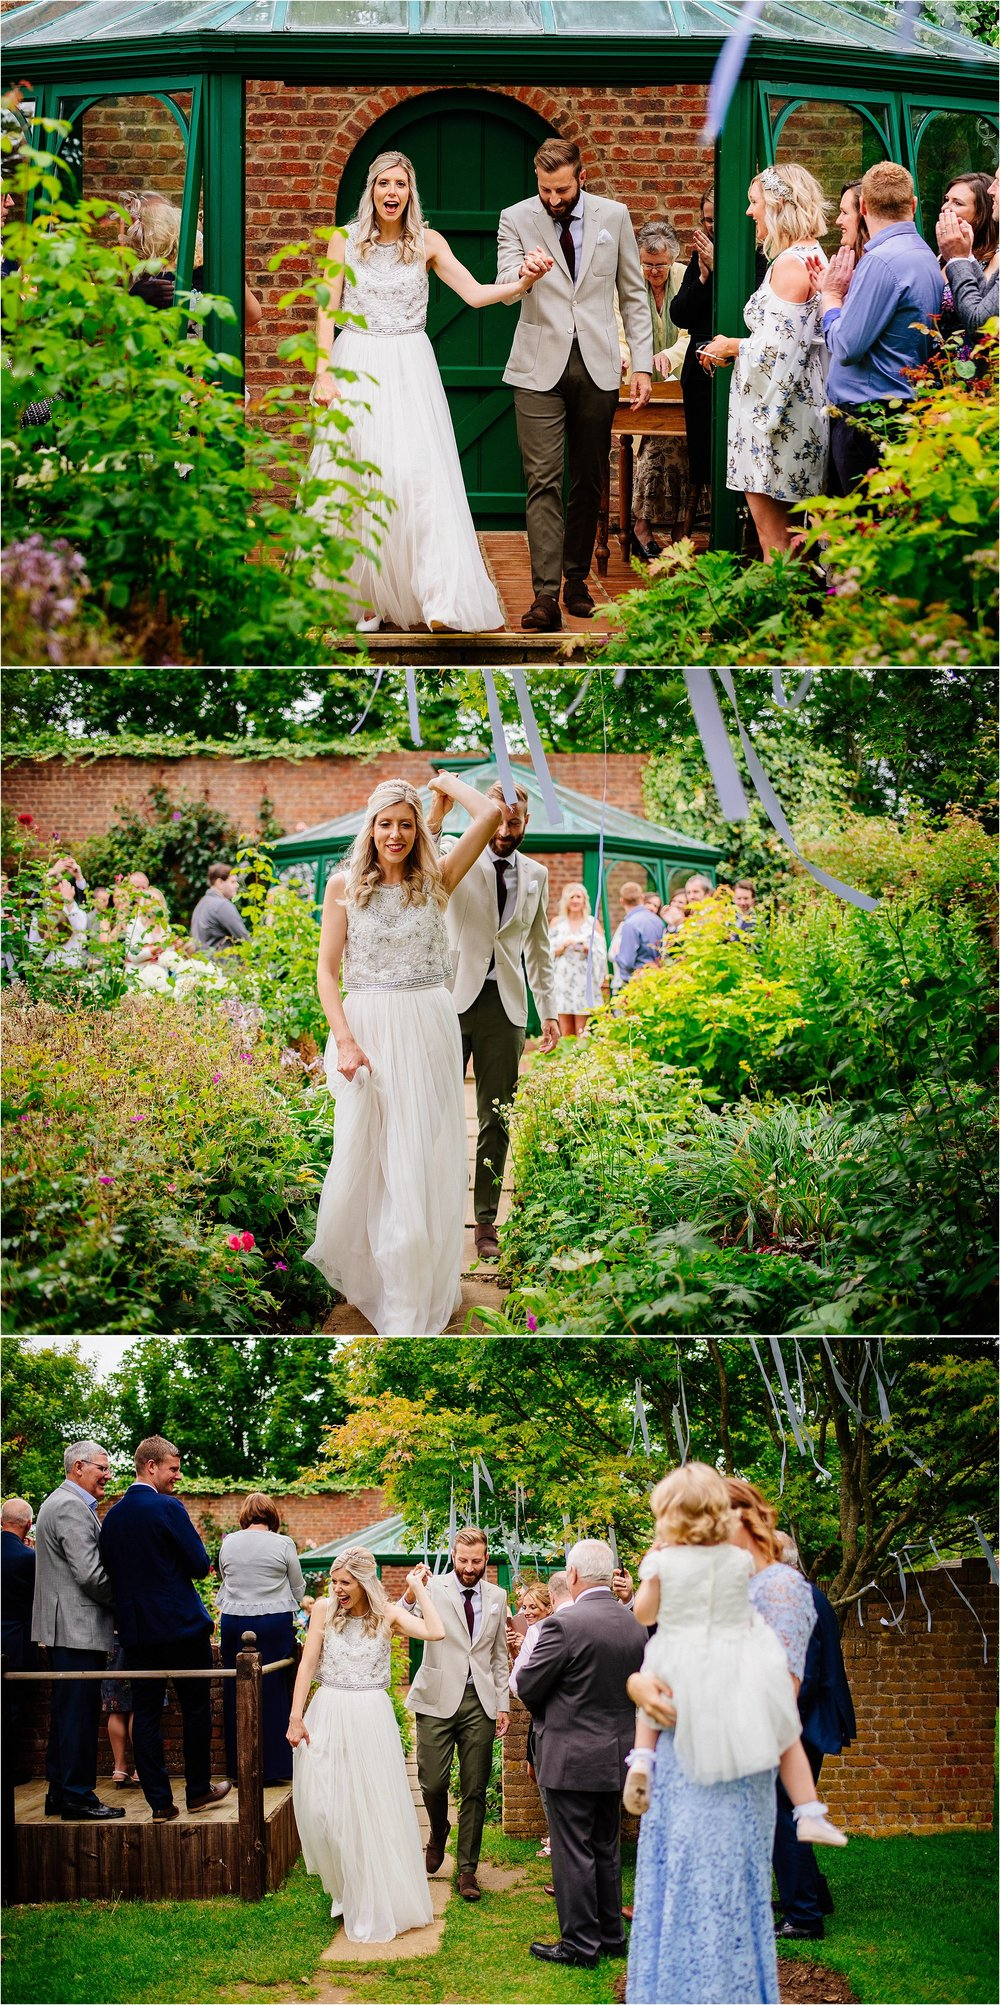 Barnsdale Gardens Wedding Photographer_0032.jpg